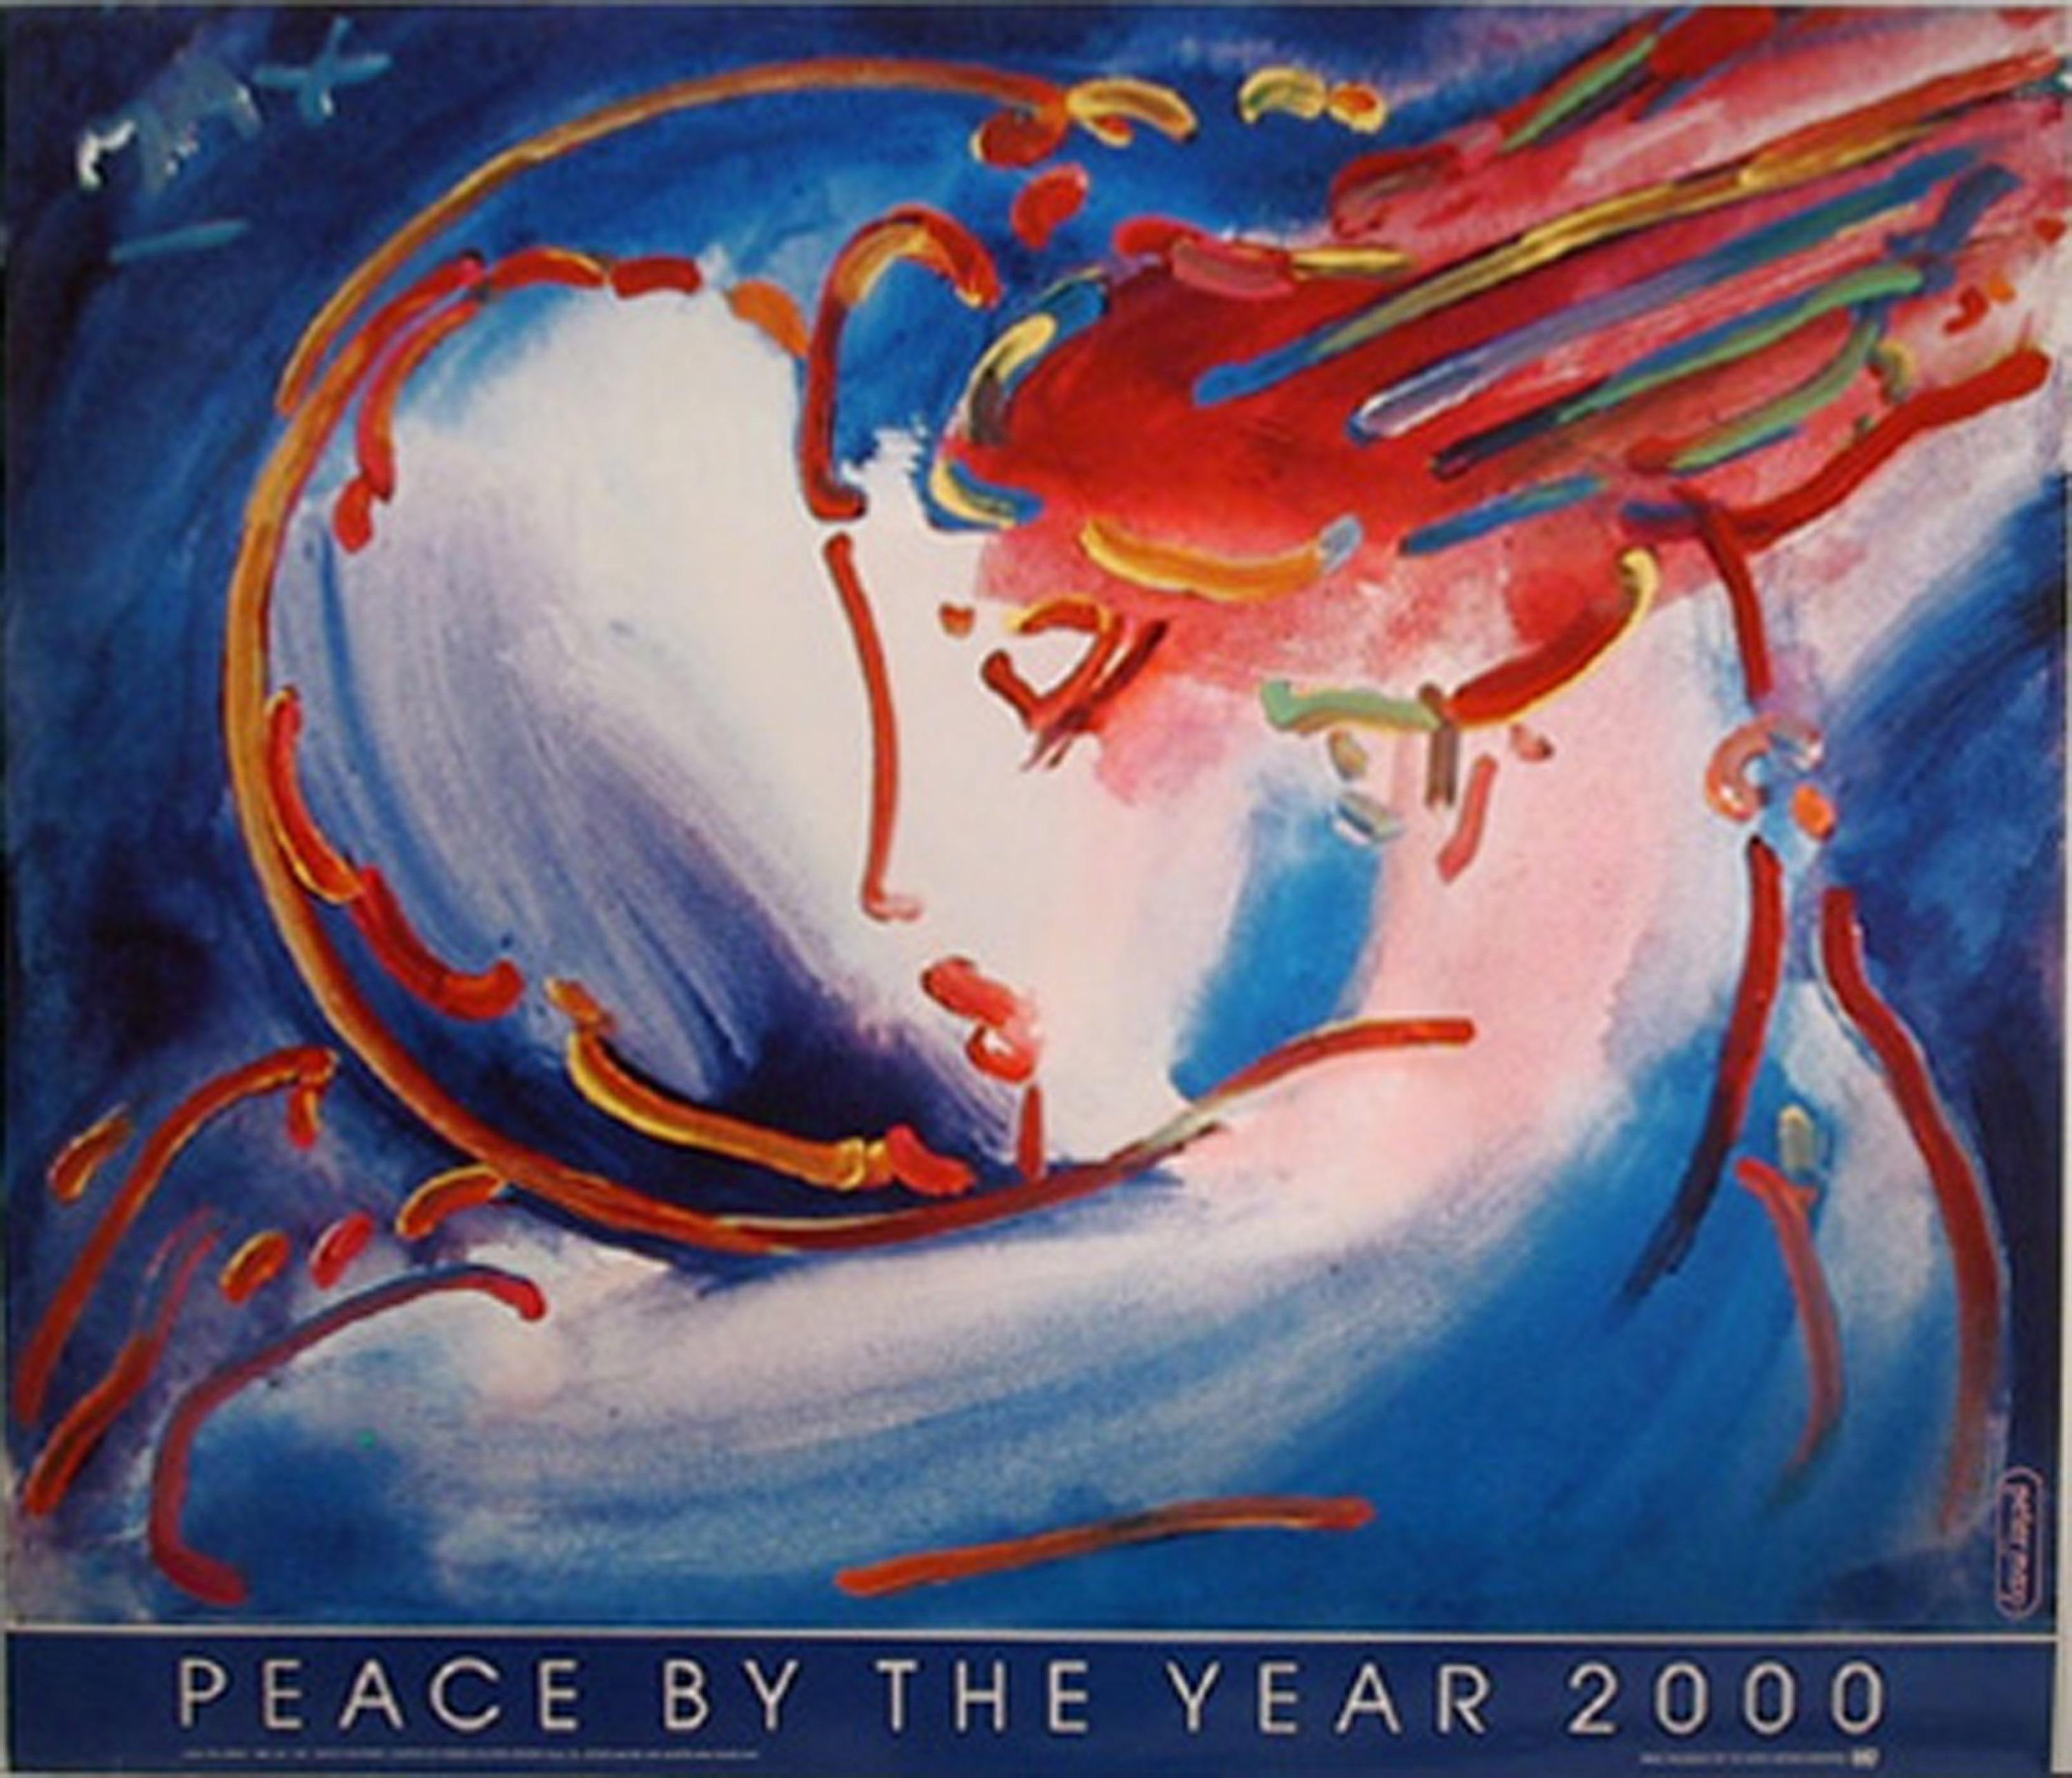 Peter Max, Peace by the Year 2000, Poster